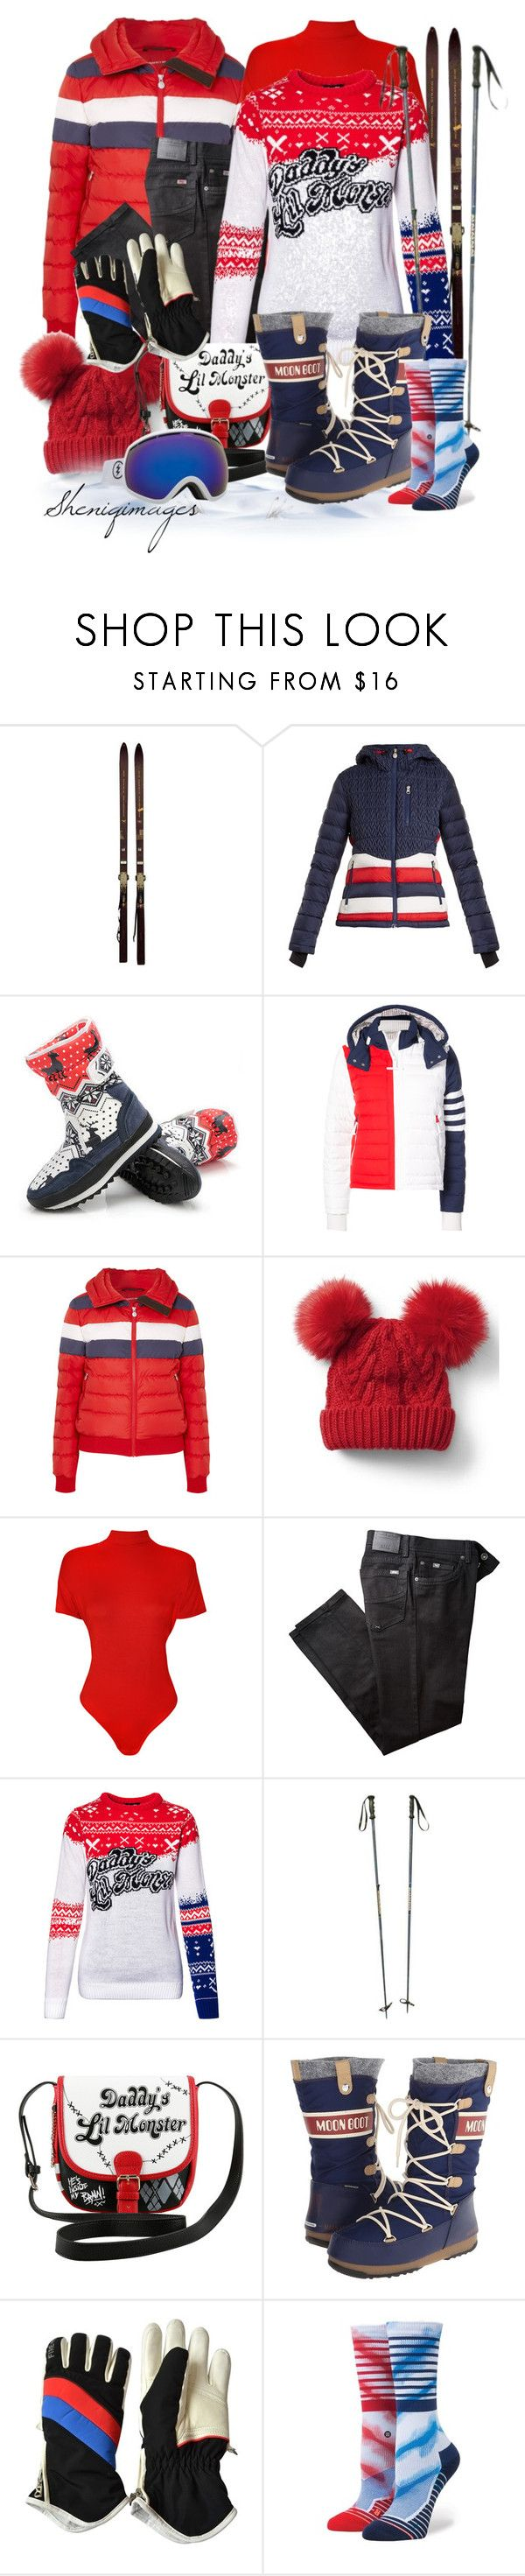 """""""Ski Vacay by Sheniq"""" by sheniq ❤ liked on Polyvore featuring Rossignol, Perfect Moment, Thom Browne, Gap, WearAll, BRAX, DC Comics, Tecnica, Bogner and Stance"""